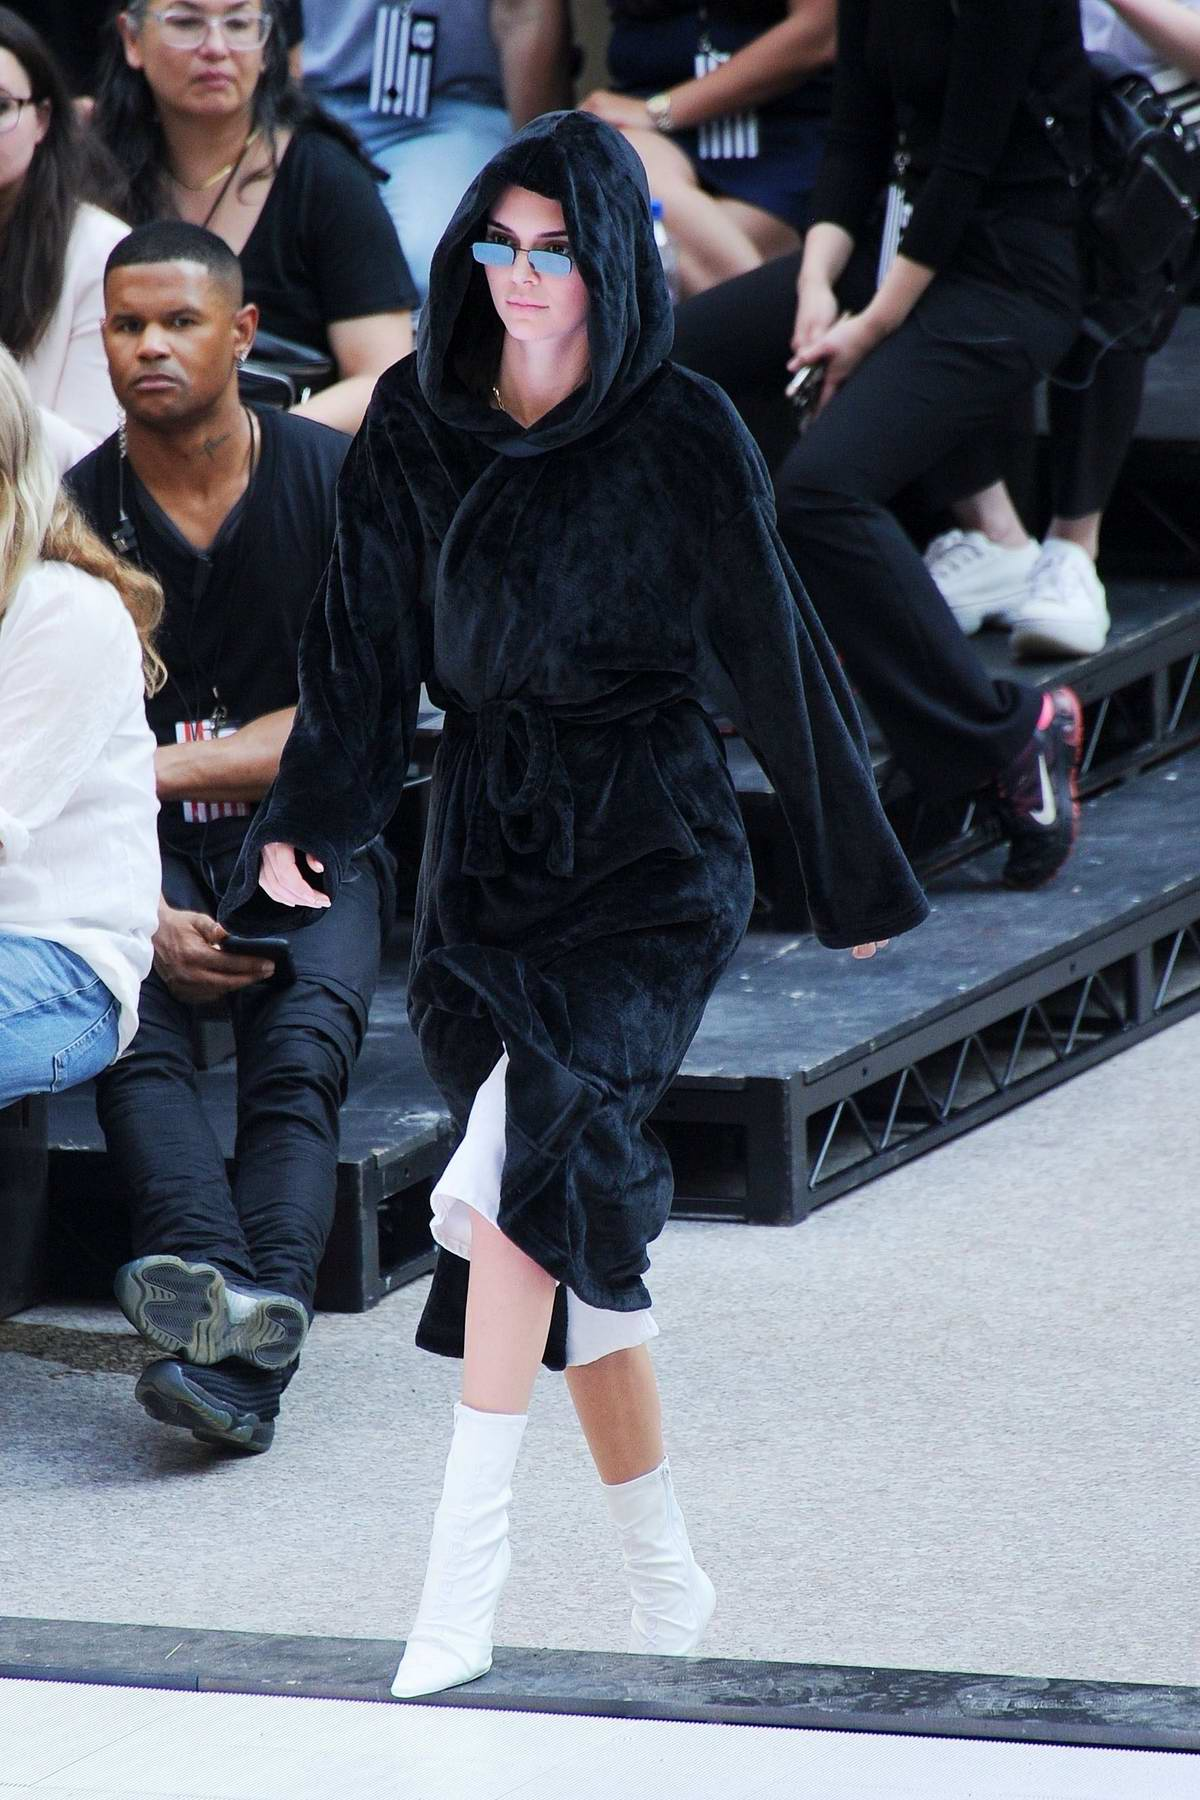 Kendall Jenner and Kaia Gerber rehearse ahead of the Alexander Wang fashion show at the Rockefeller Center in New York City